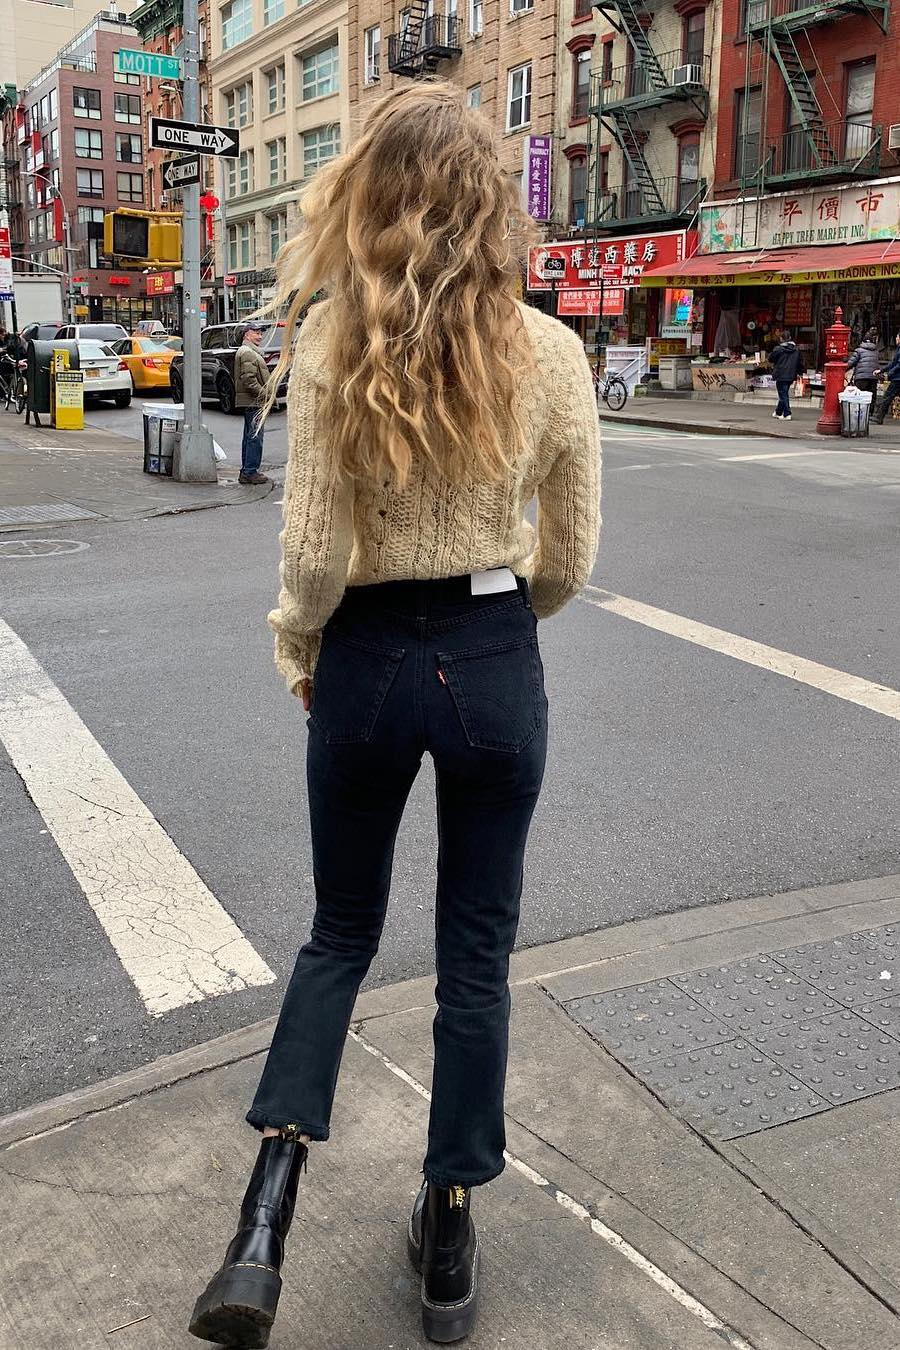 cable knit sweater with jeans and combat boots